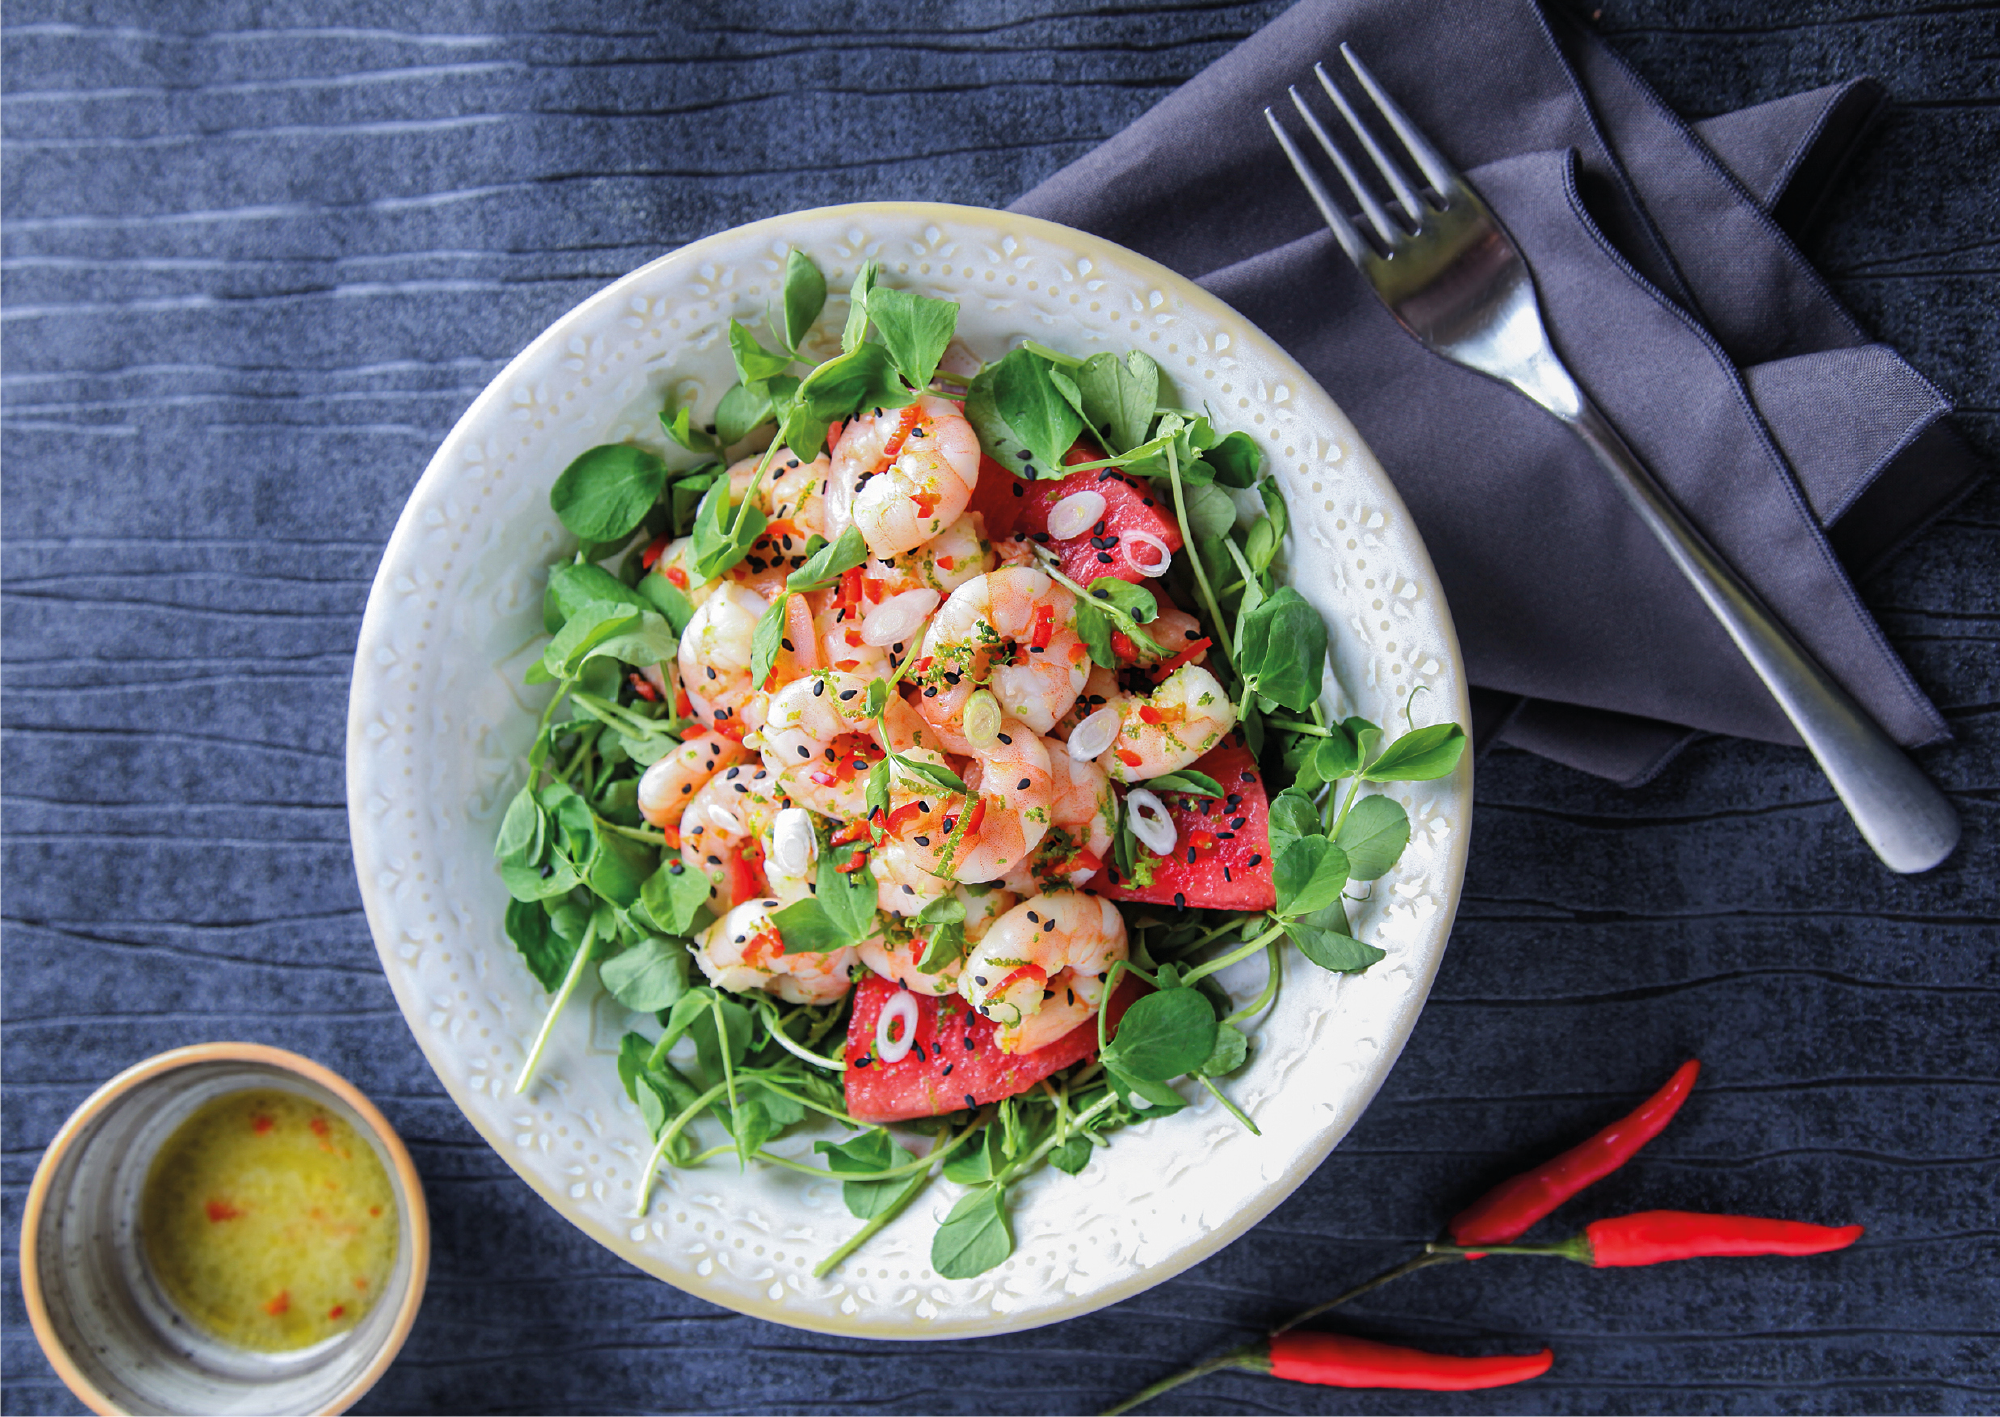 dish with green leafy salad and watermelon, topped with peeled cooked king prawns and sesame seeds. On the side there is a fork on a grey napkin, chilli peppers and olive oil dressing.